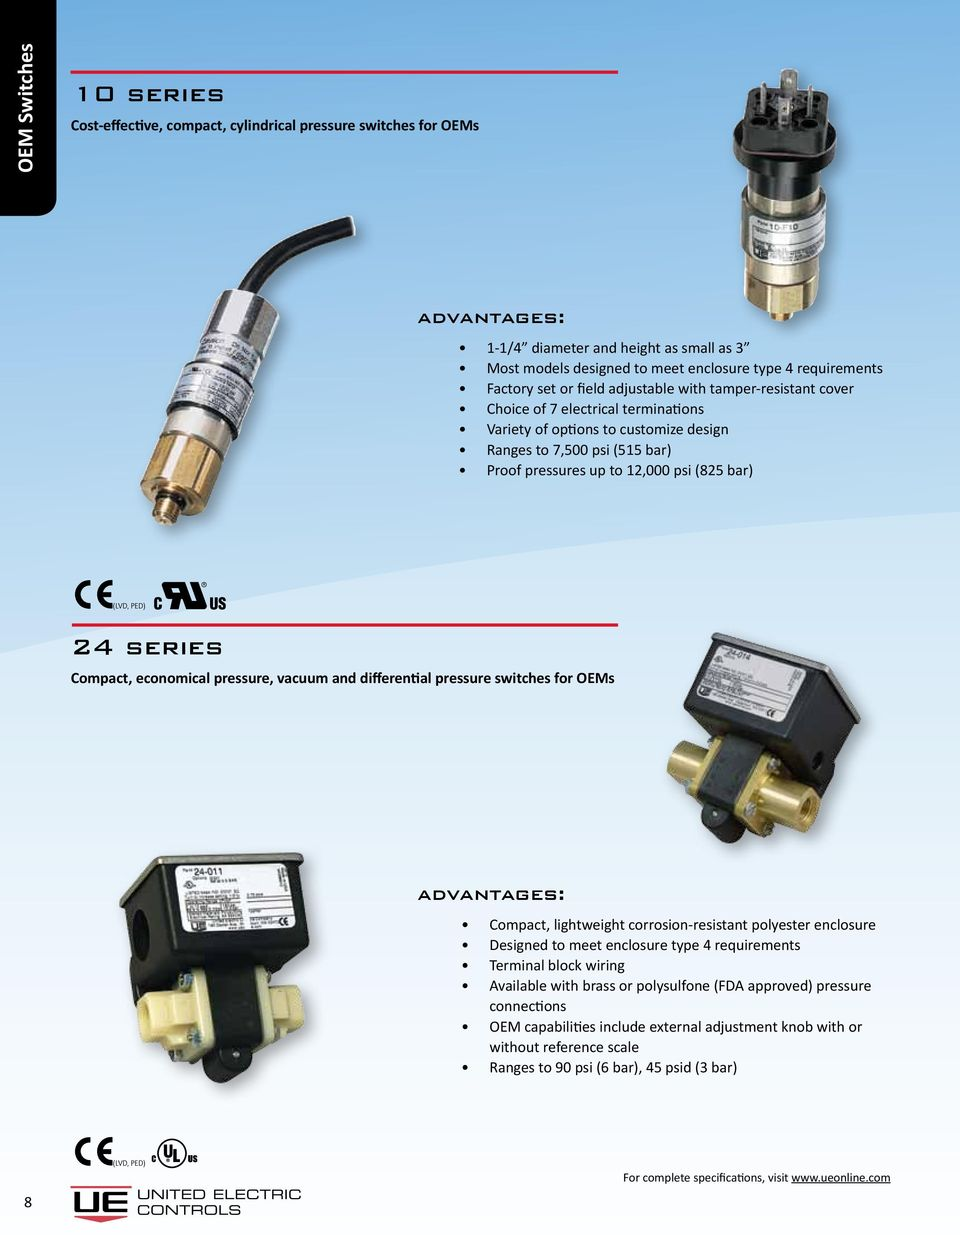 series Compact, economical pressure, vacuum and differential pressure switches for OEMs Compact, lightweight corrosion-resistant polyester enclosure Designed to meet enclosure type 4 requirements